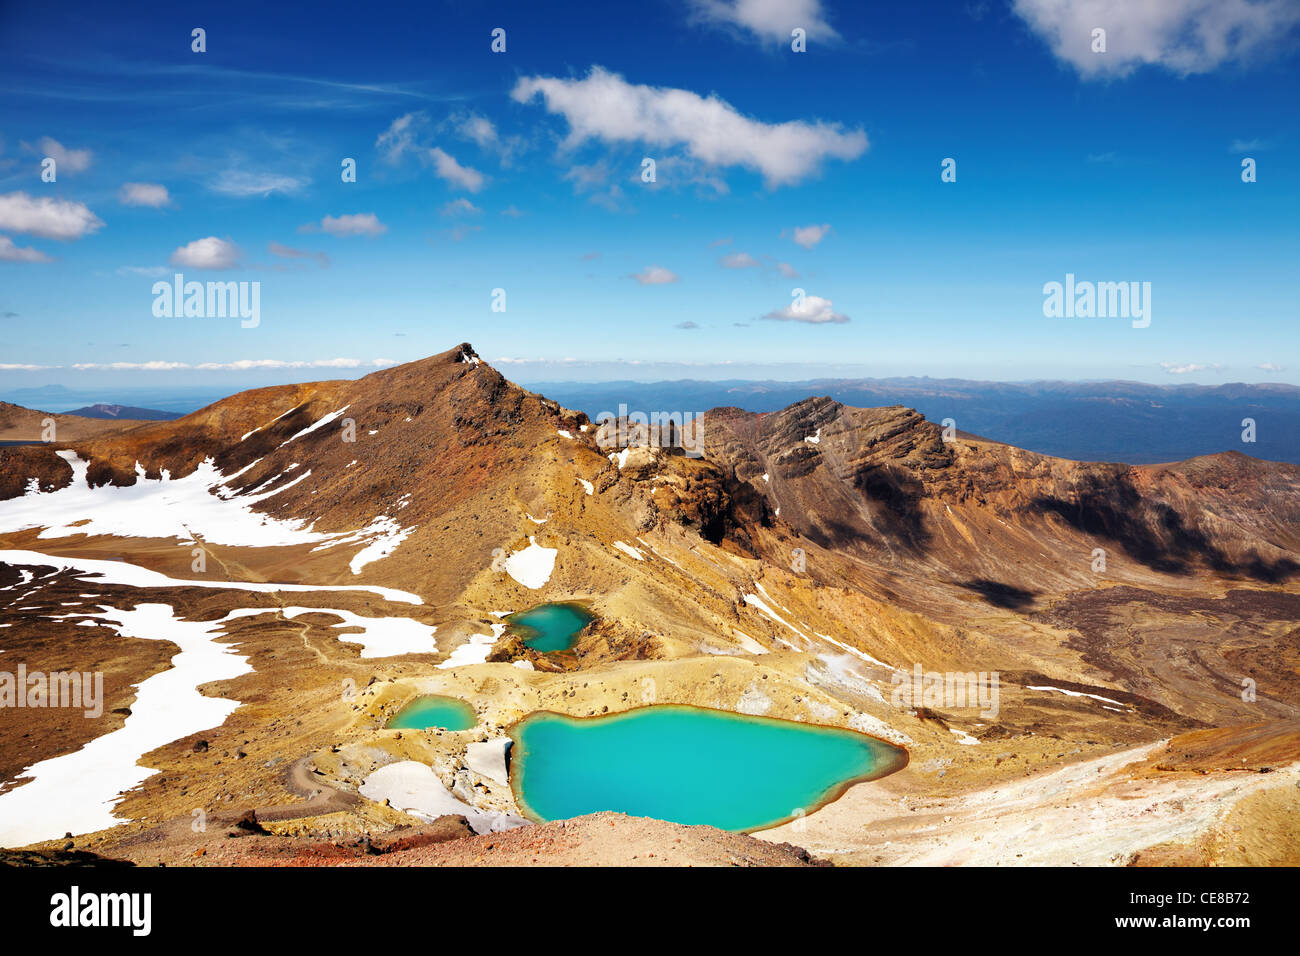 Lacs émeraude, Parc National de Tongariro, Nouvelle-Zélande Photo Stock